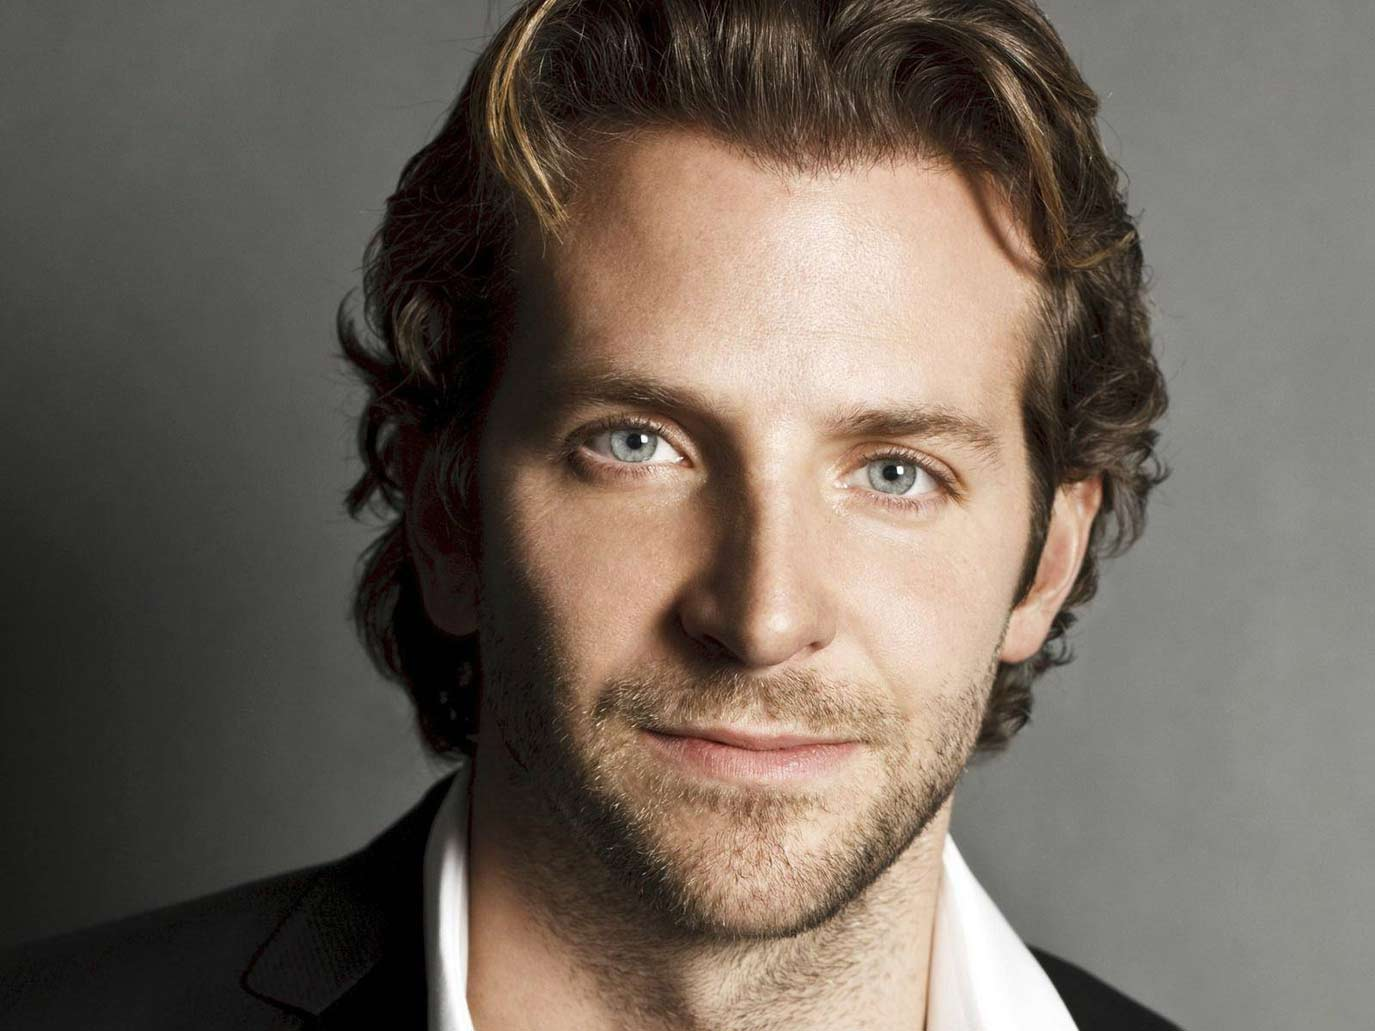 bradley-cooper-sexy-suit-hollywood-hot-sexiest-actor-men-movie-star-handsome-recent